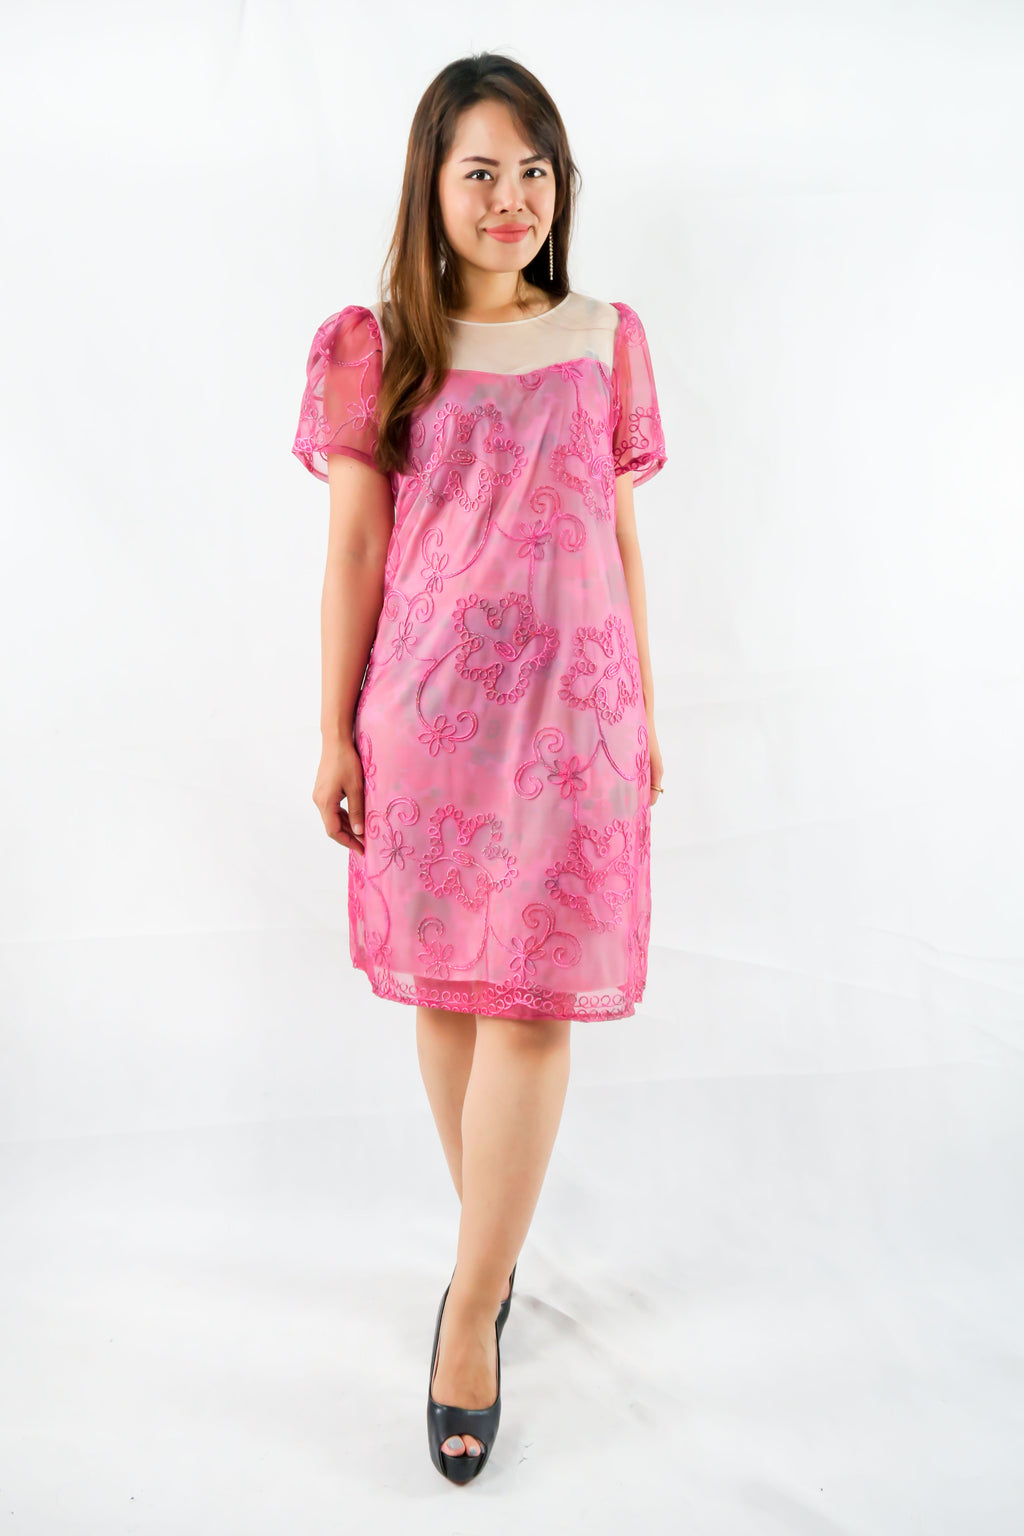 เดรสคอกลม - Dresses Women's Plus Size Mixed Floral Shift